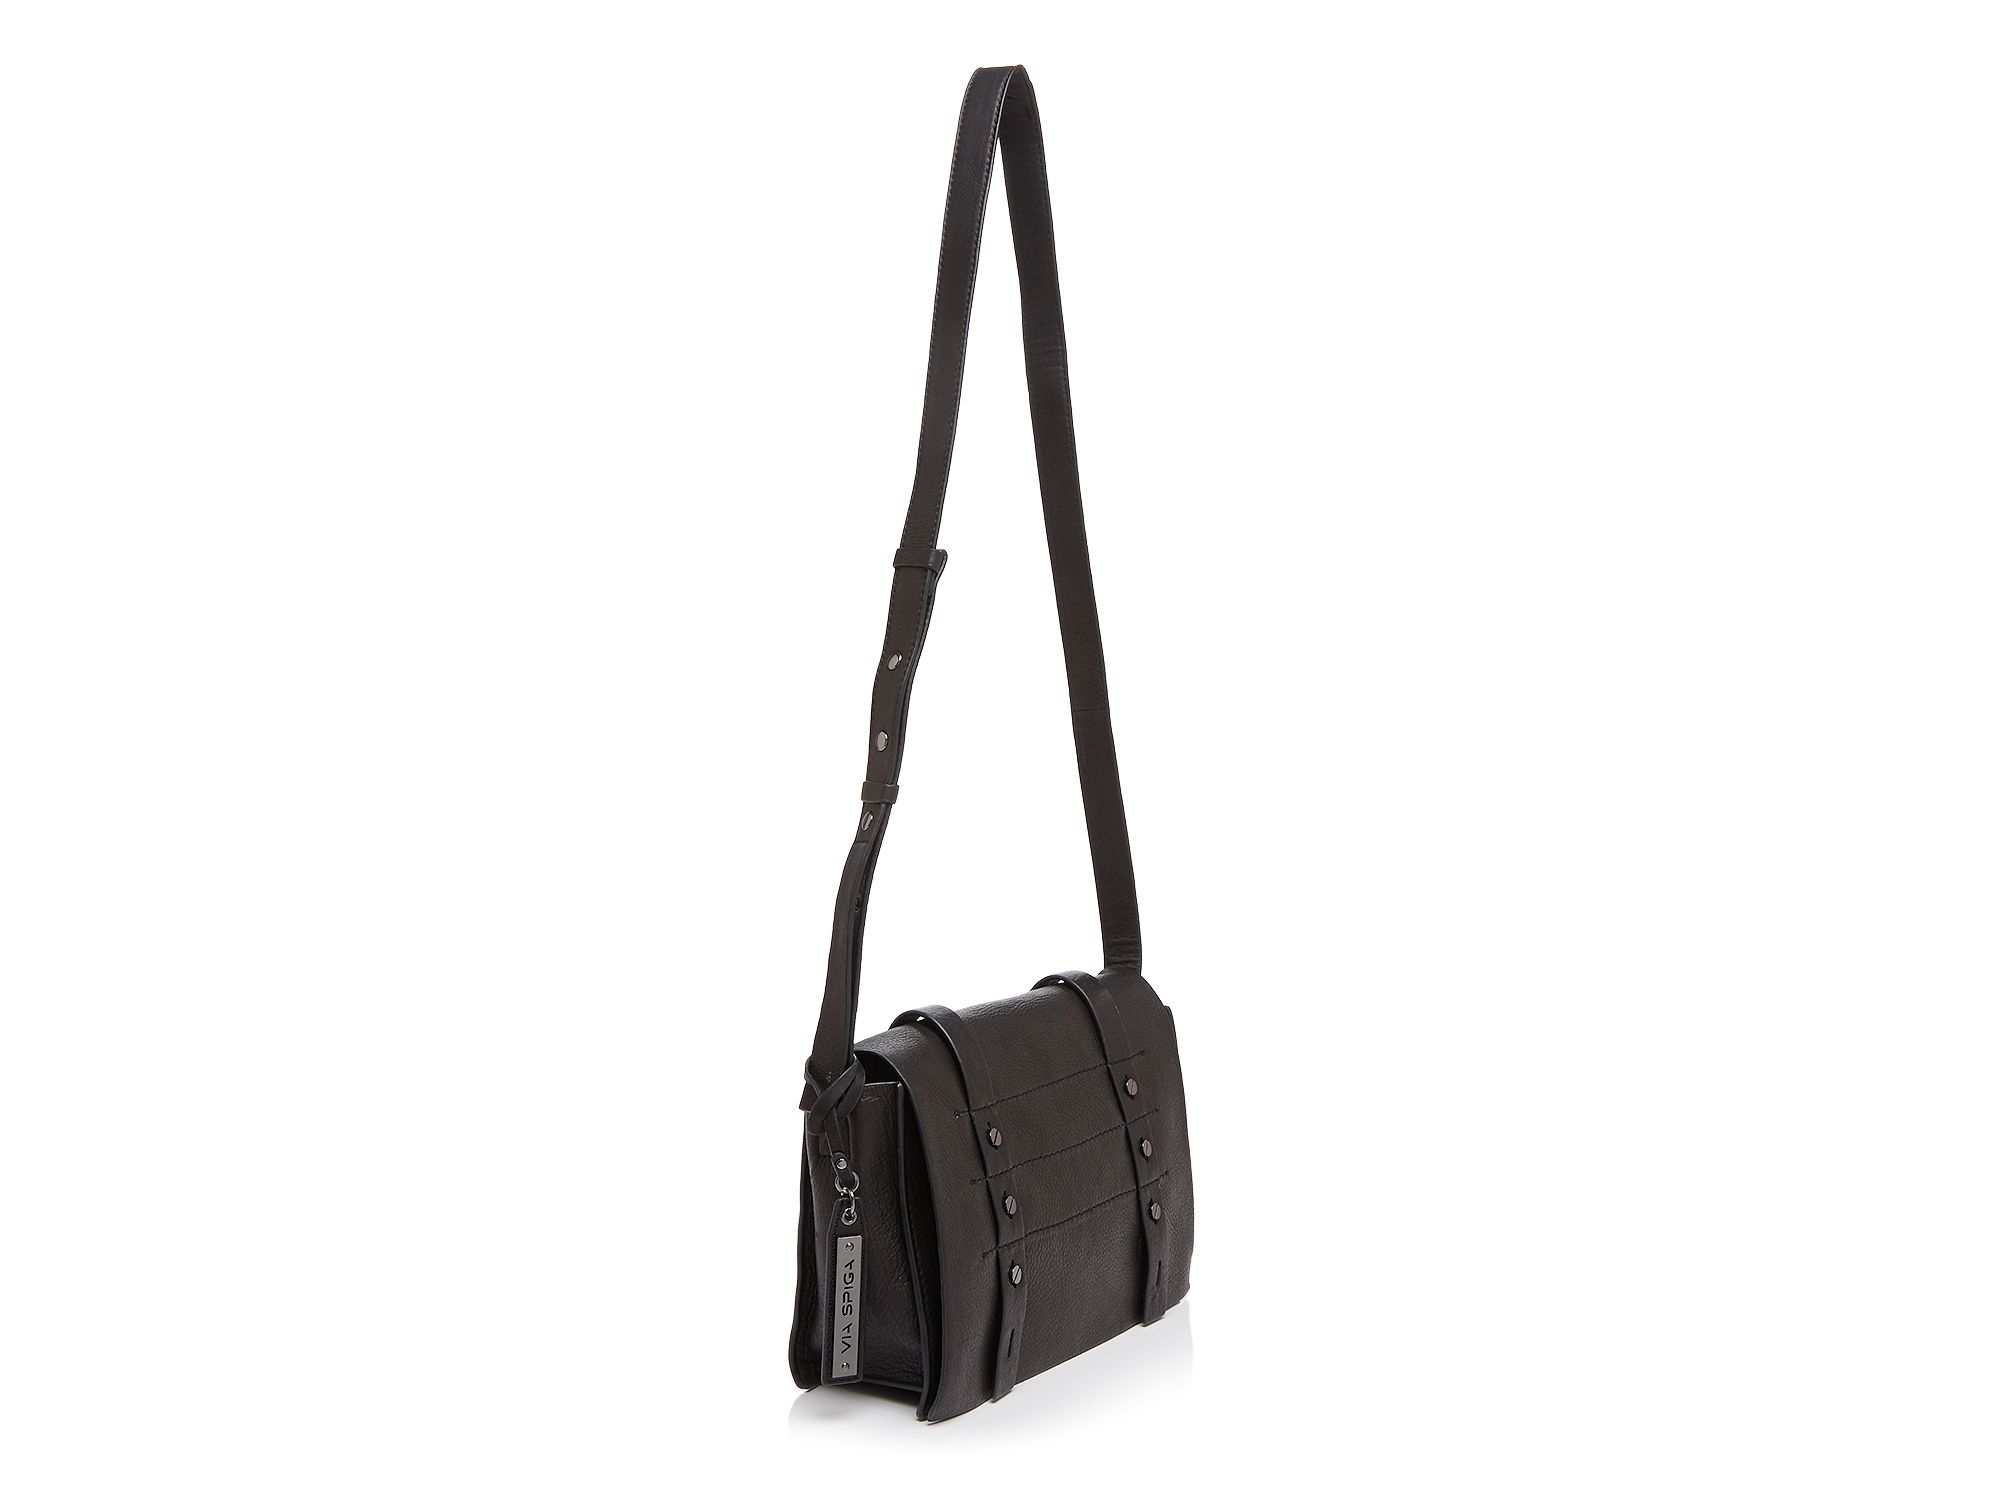 Via Spiga Leather Norma Small Flap Crossbody in Black